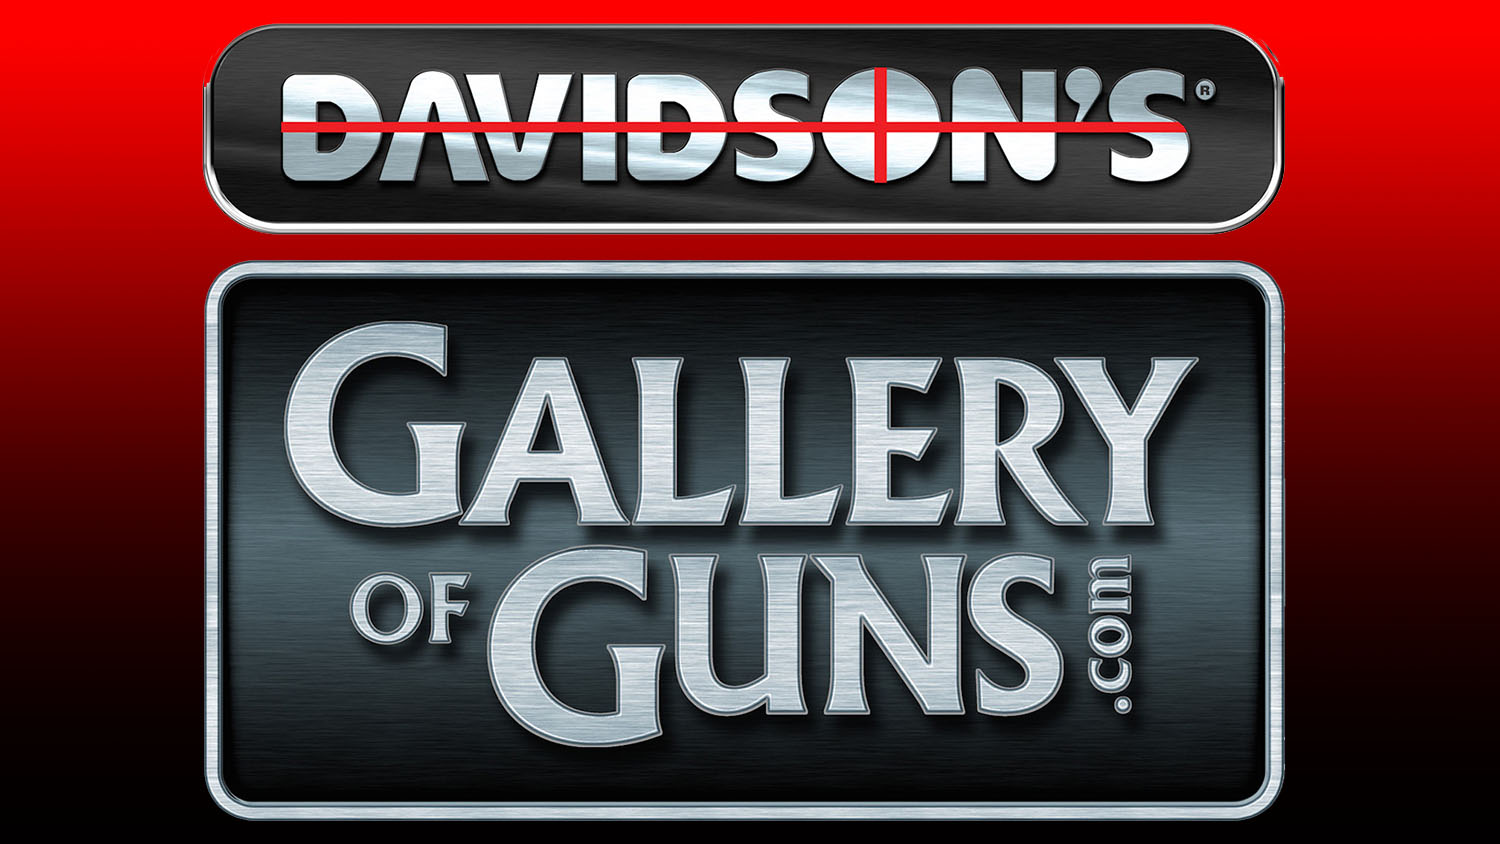 Davidson's Gallery of Guns Offering Exclusive Ruger SR1911 NRA Special Edition Pistol